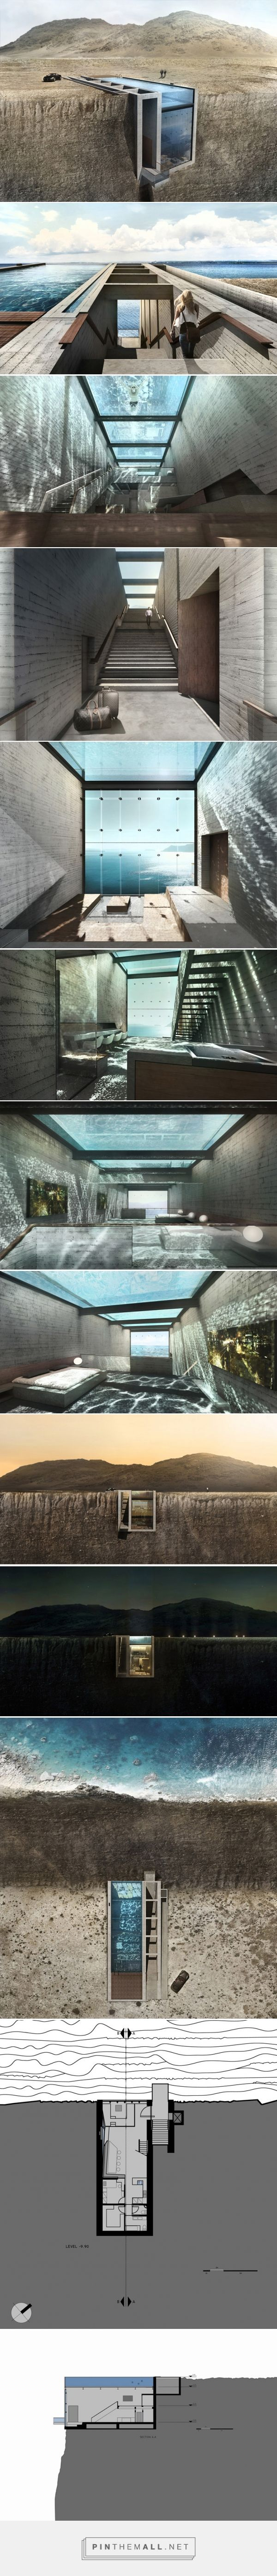 OPA presents conceptual cliffside casa brutale on the aegean sea - created via http://pinthemall.net